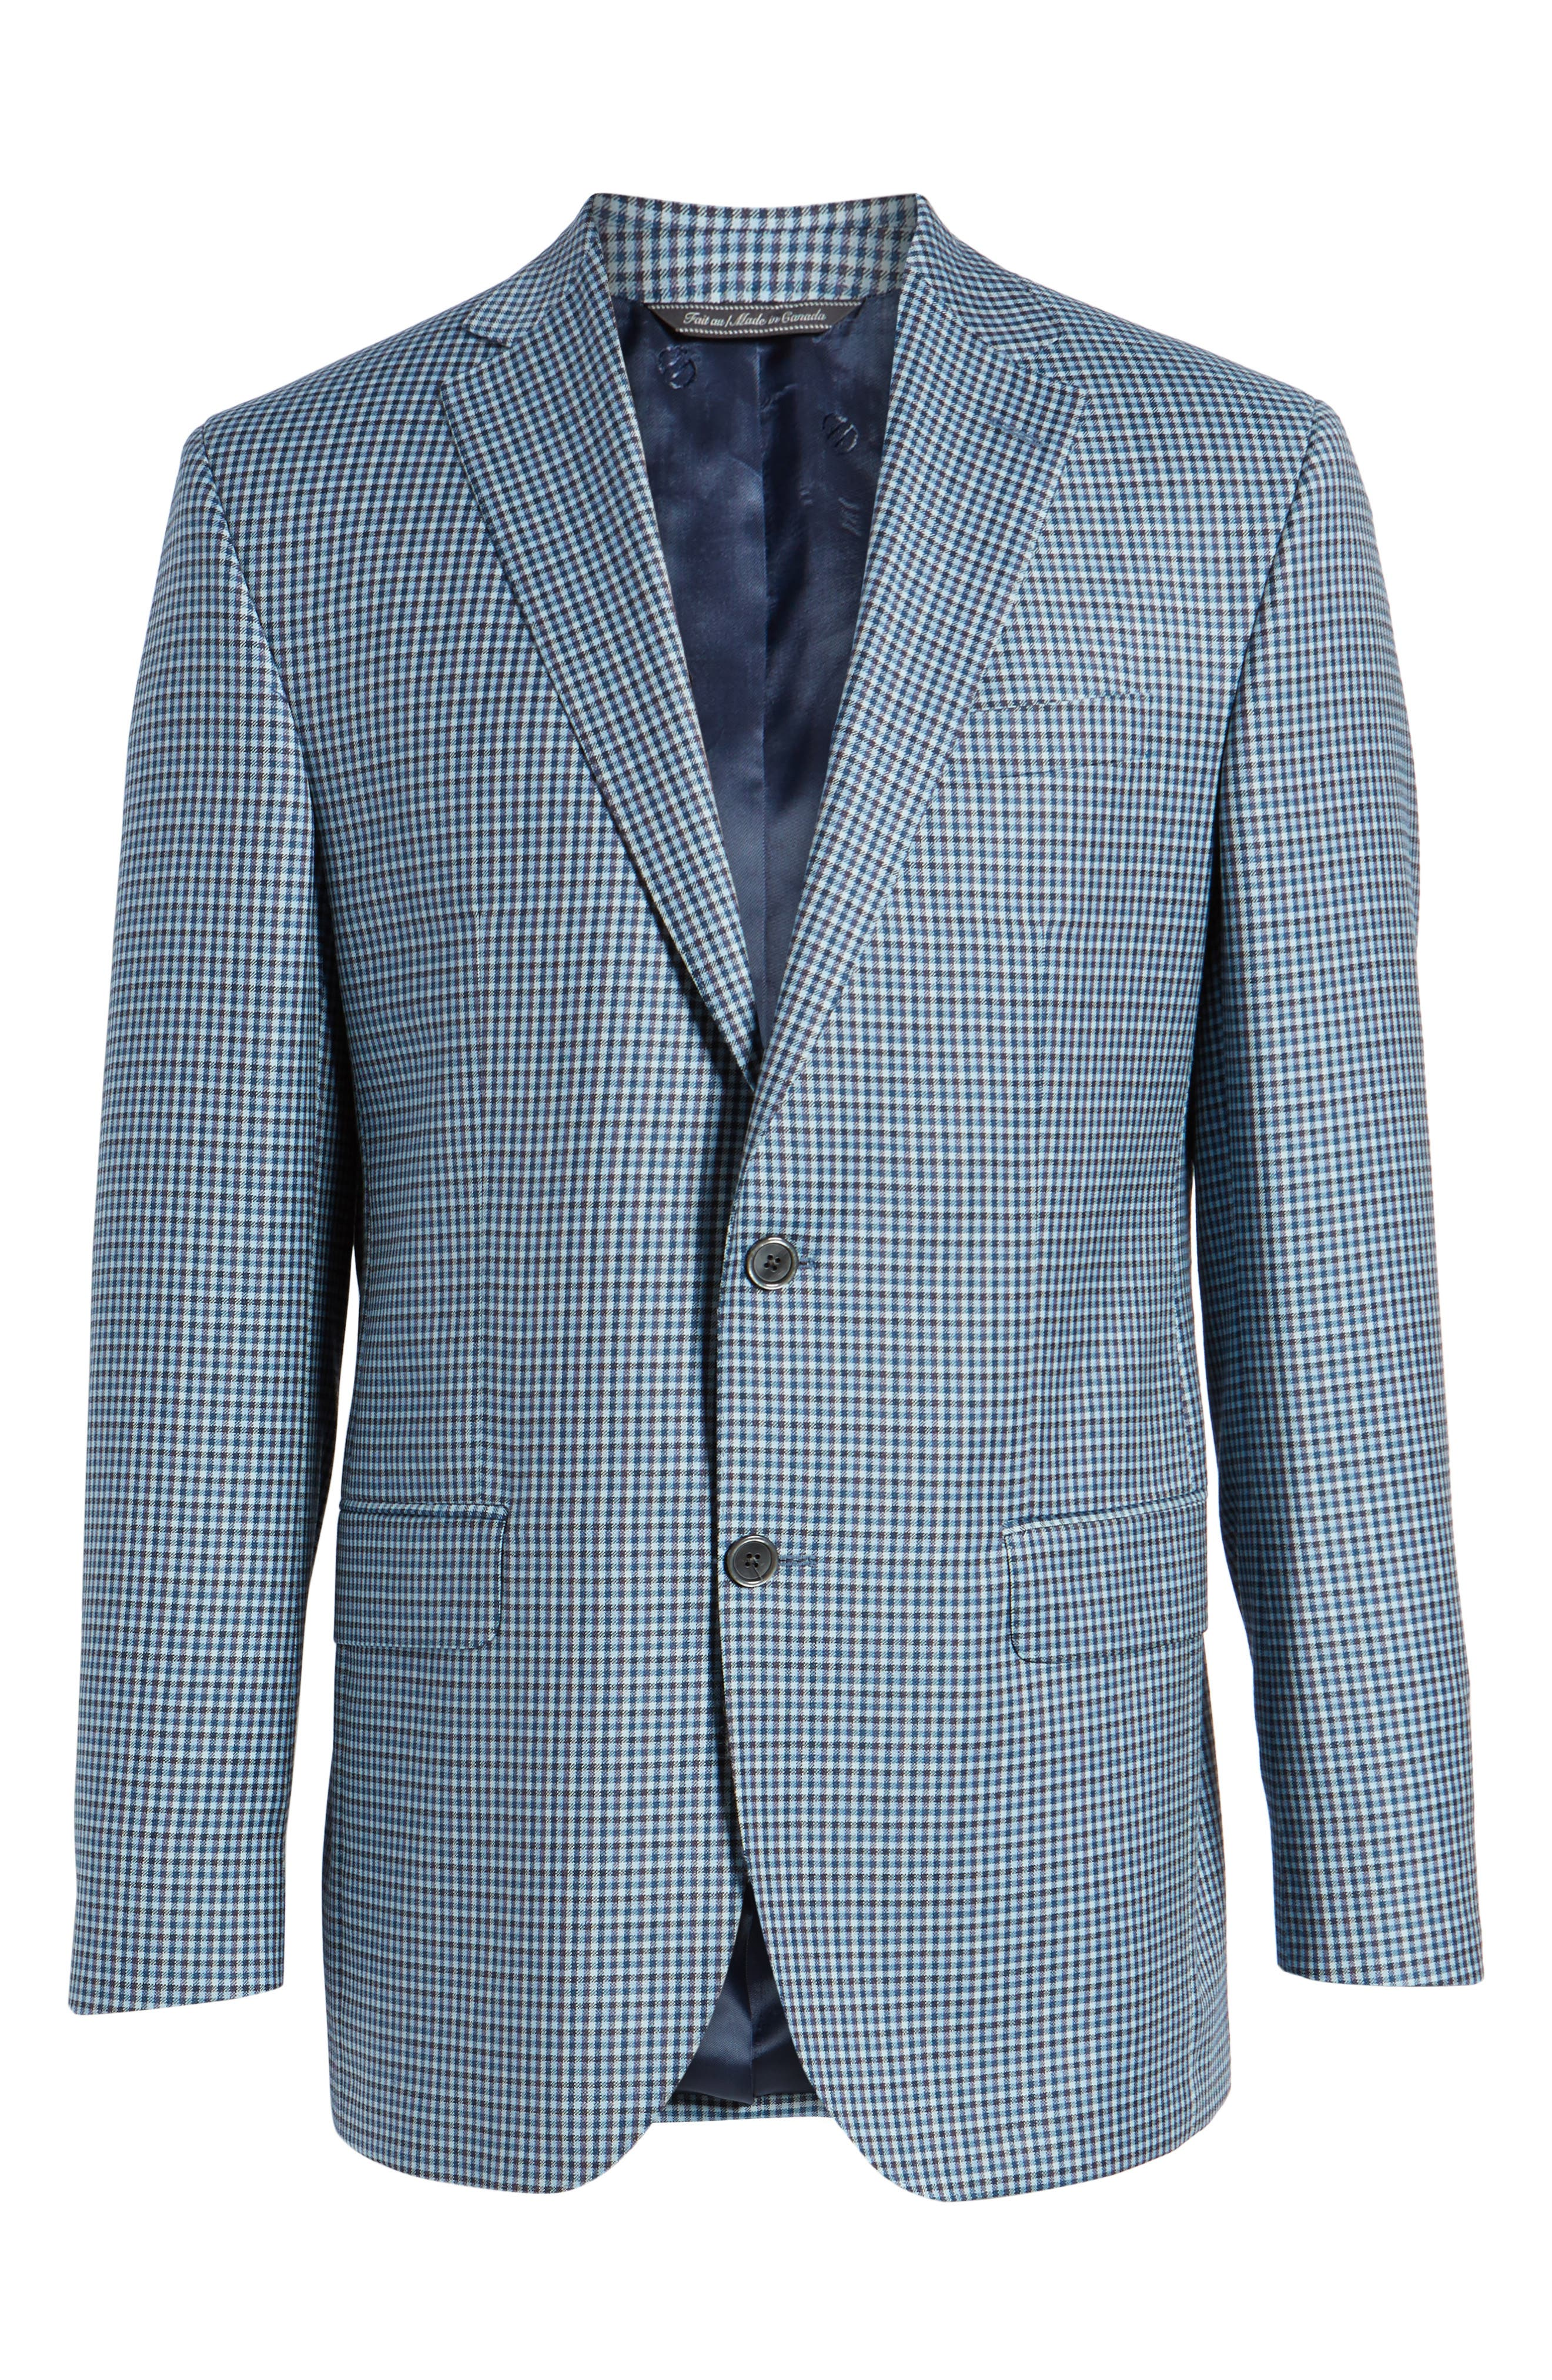 Arnold Classic Fit Check Wool Sport Coat,                             Alternate thumbnail 5, color,                             400